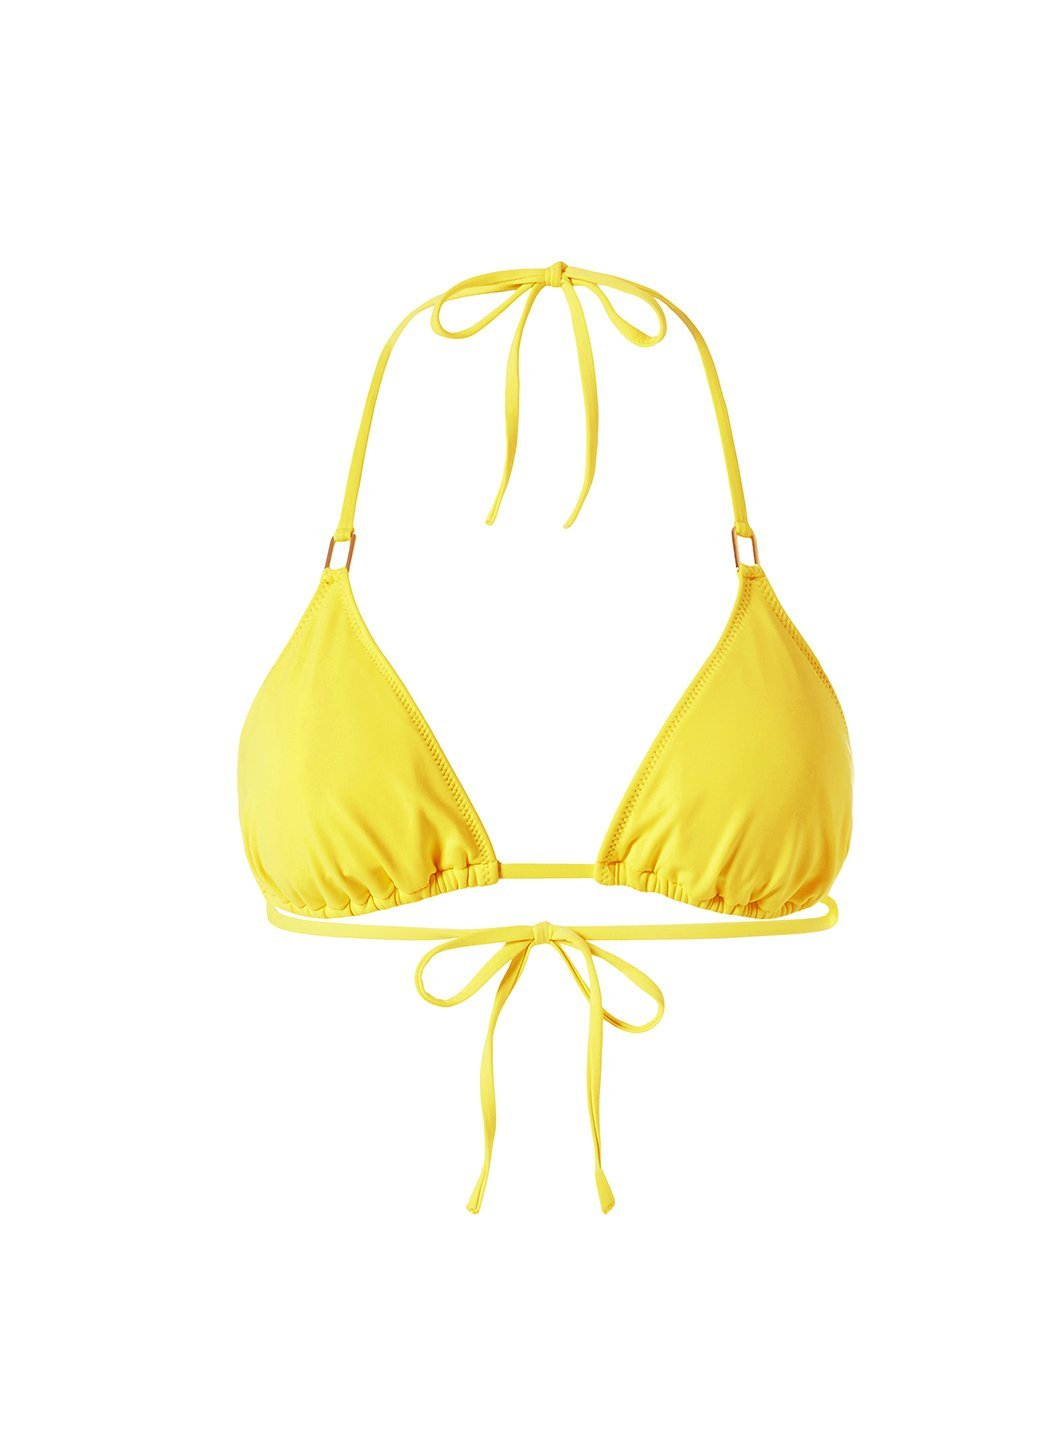 Cancun Lemon Bikini Top Cutout